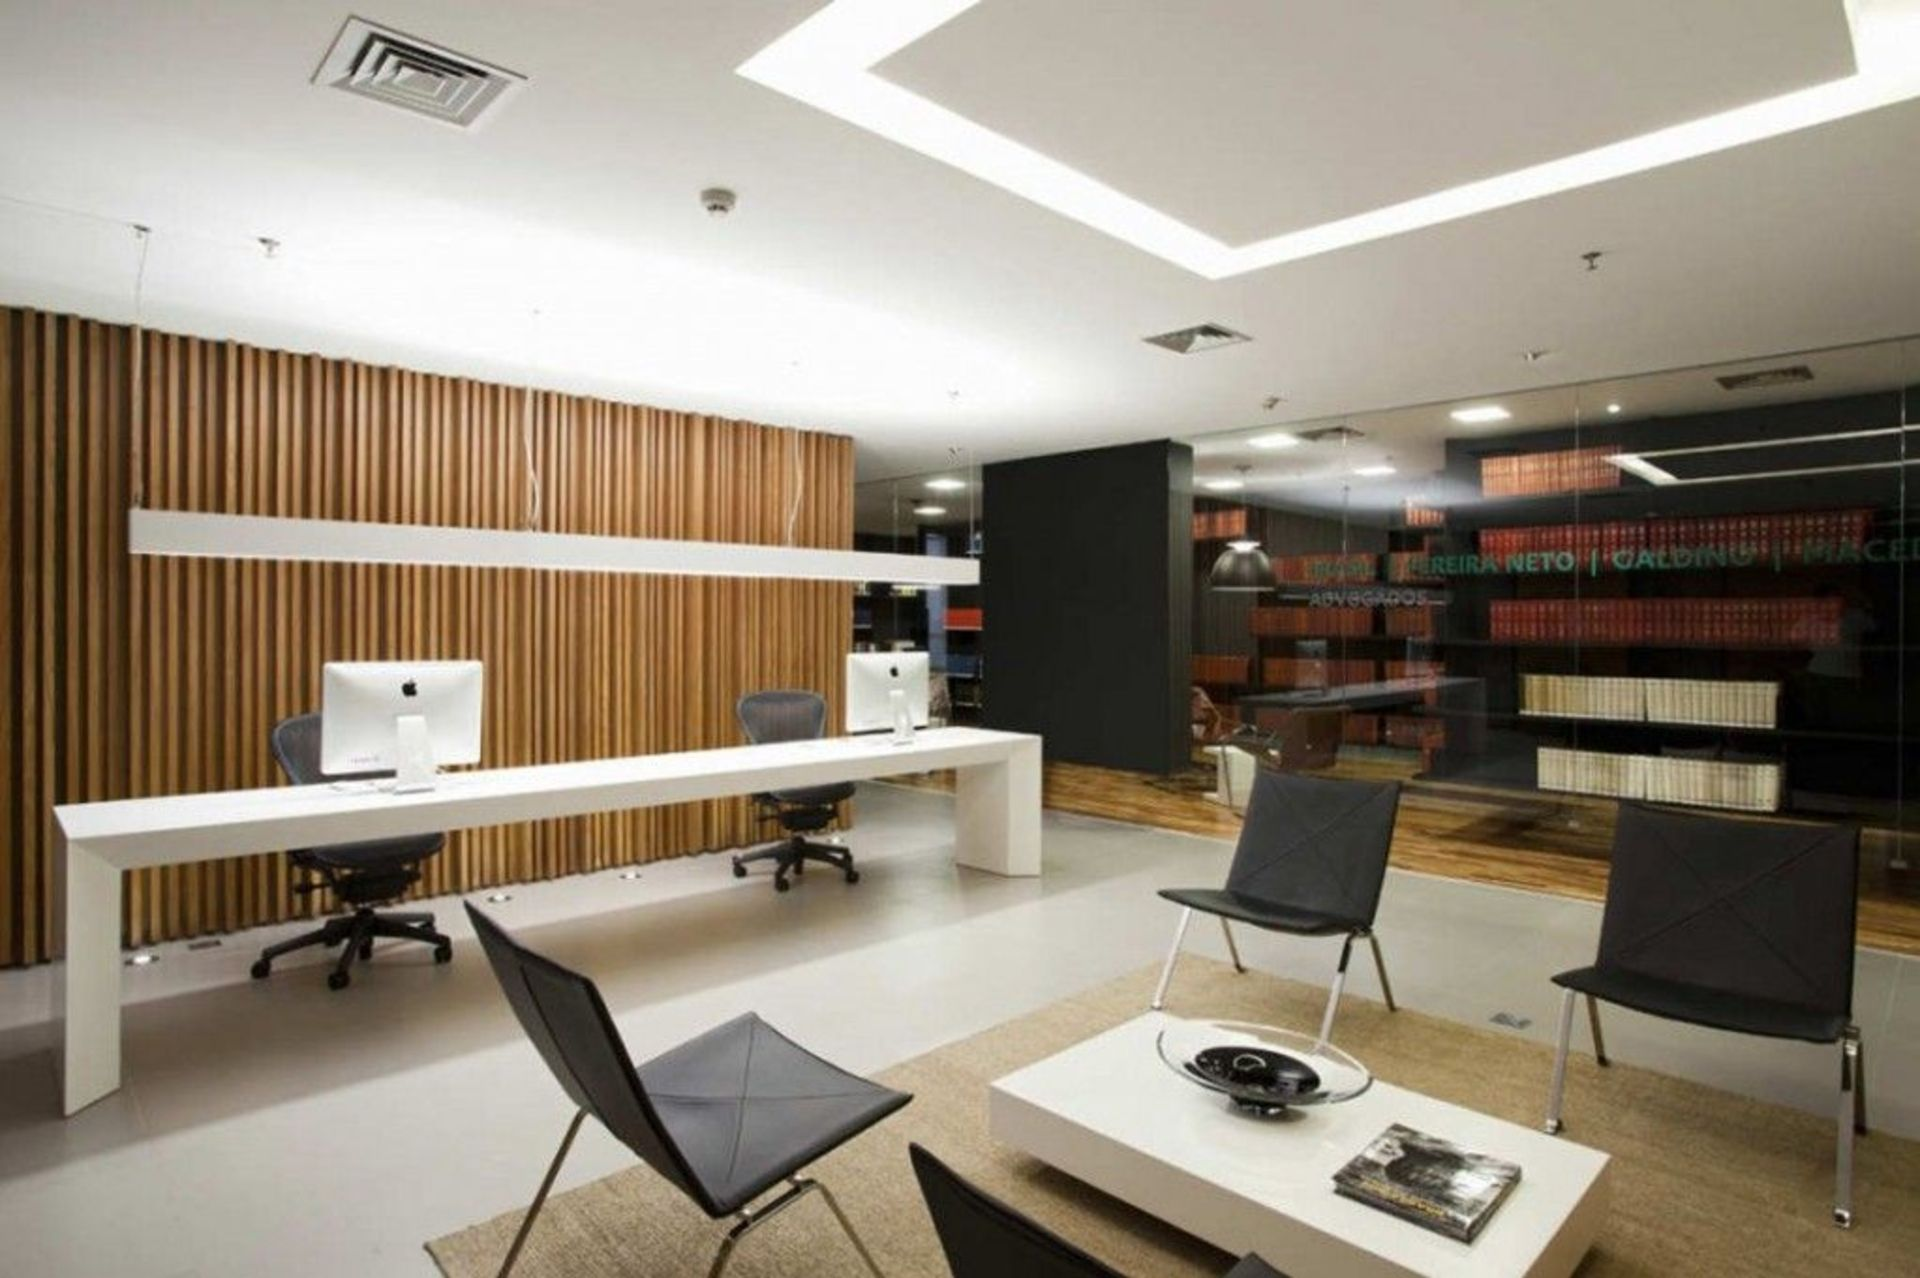 Office design office design interior modern office design google - Design Traditional Office Interior Design Google Search